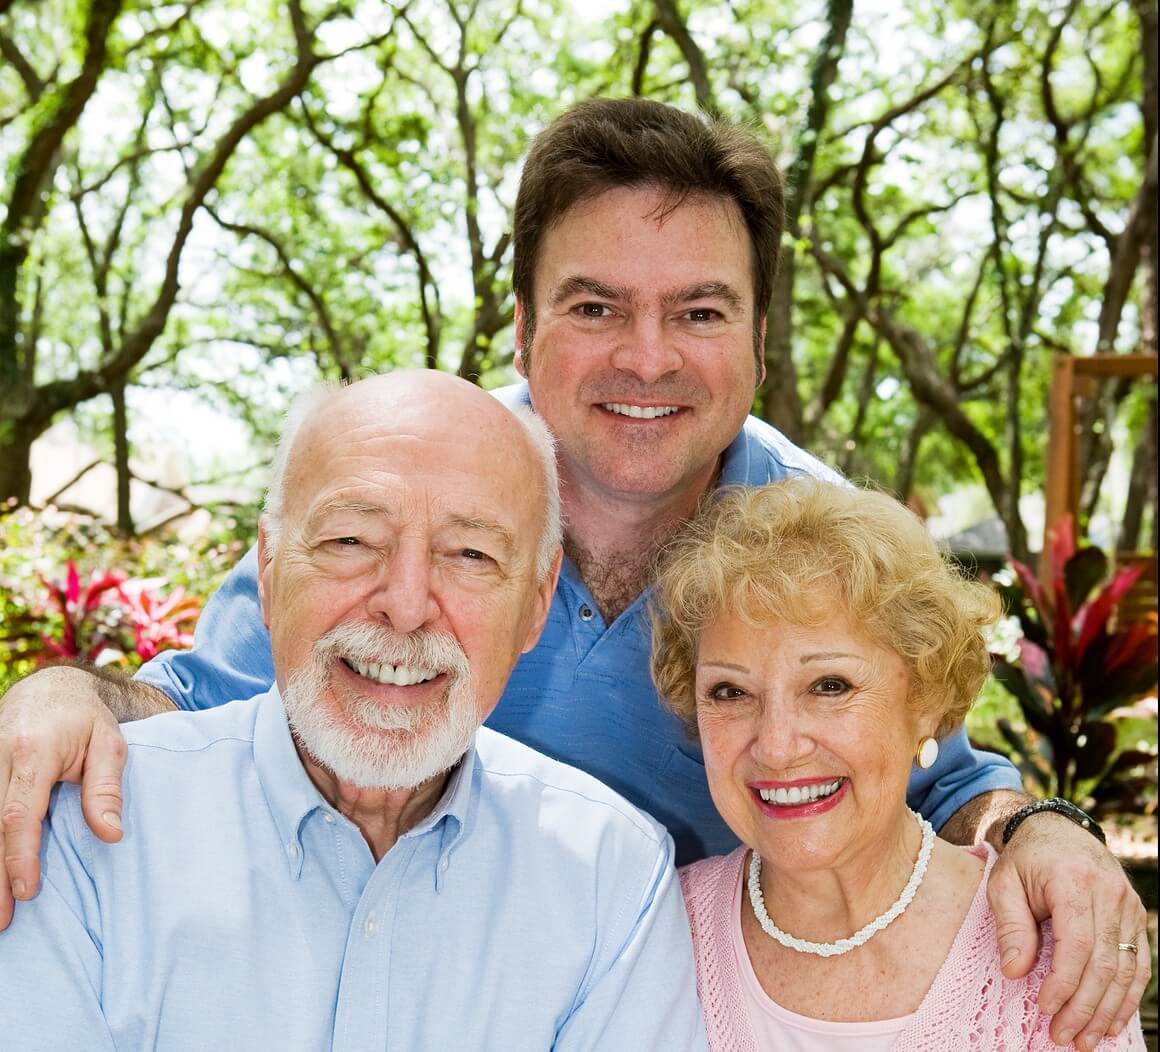 Aging Parents: Home Safety Checklist For Your Elderly Parents